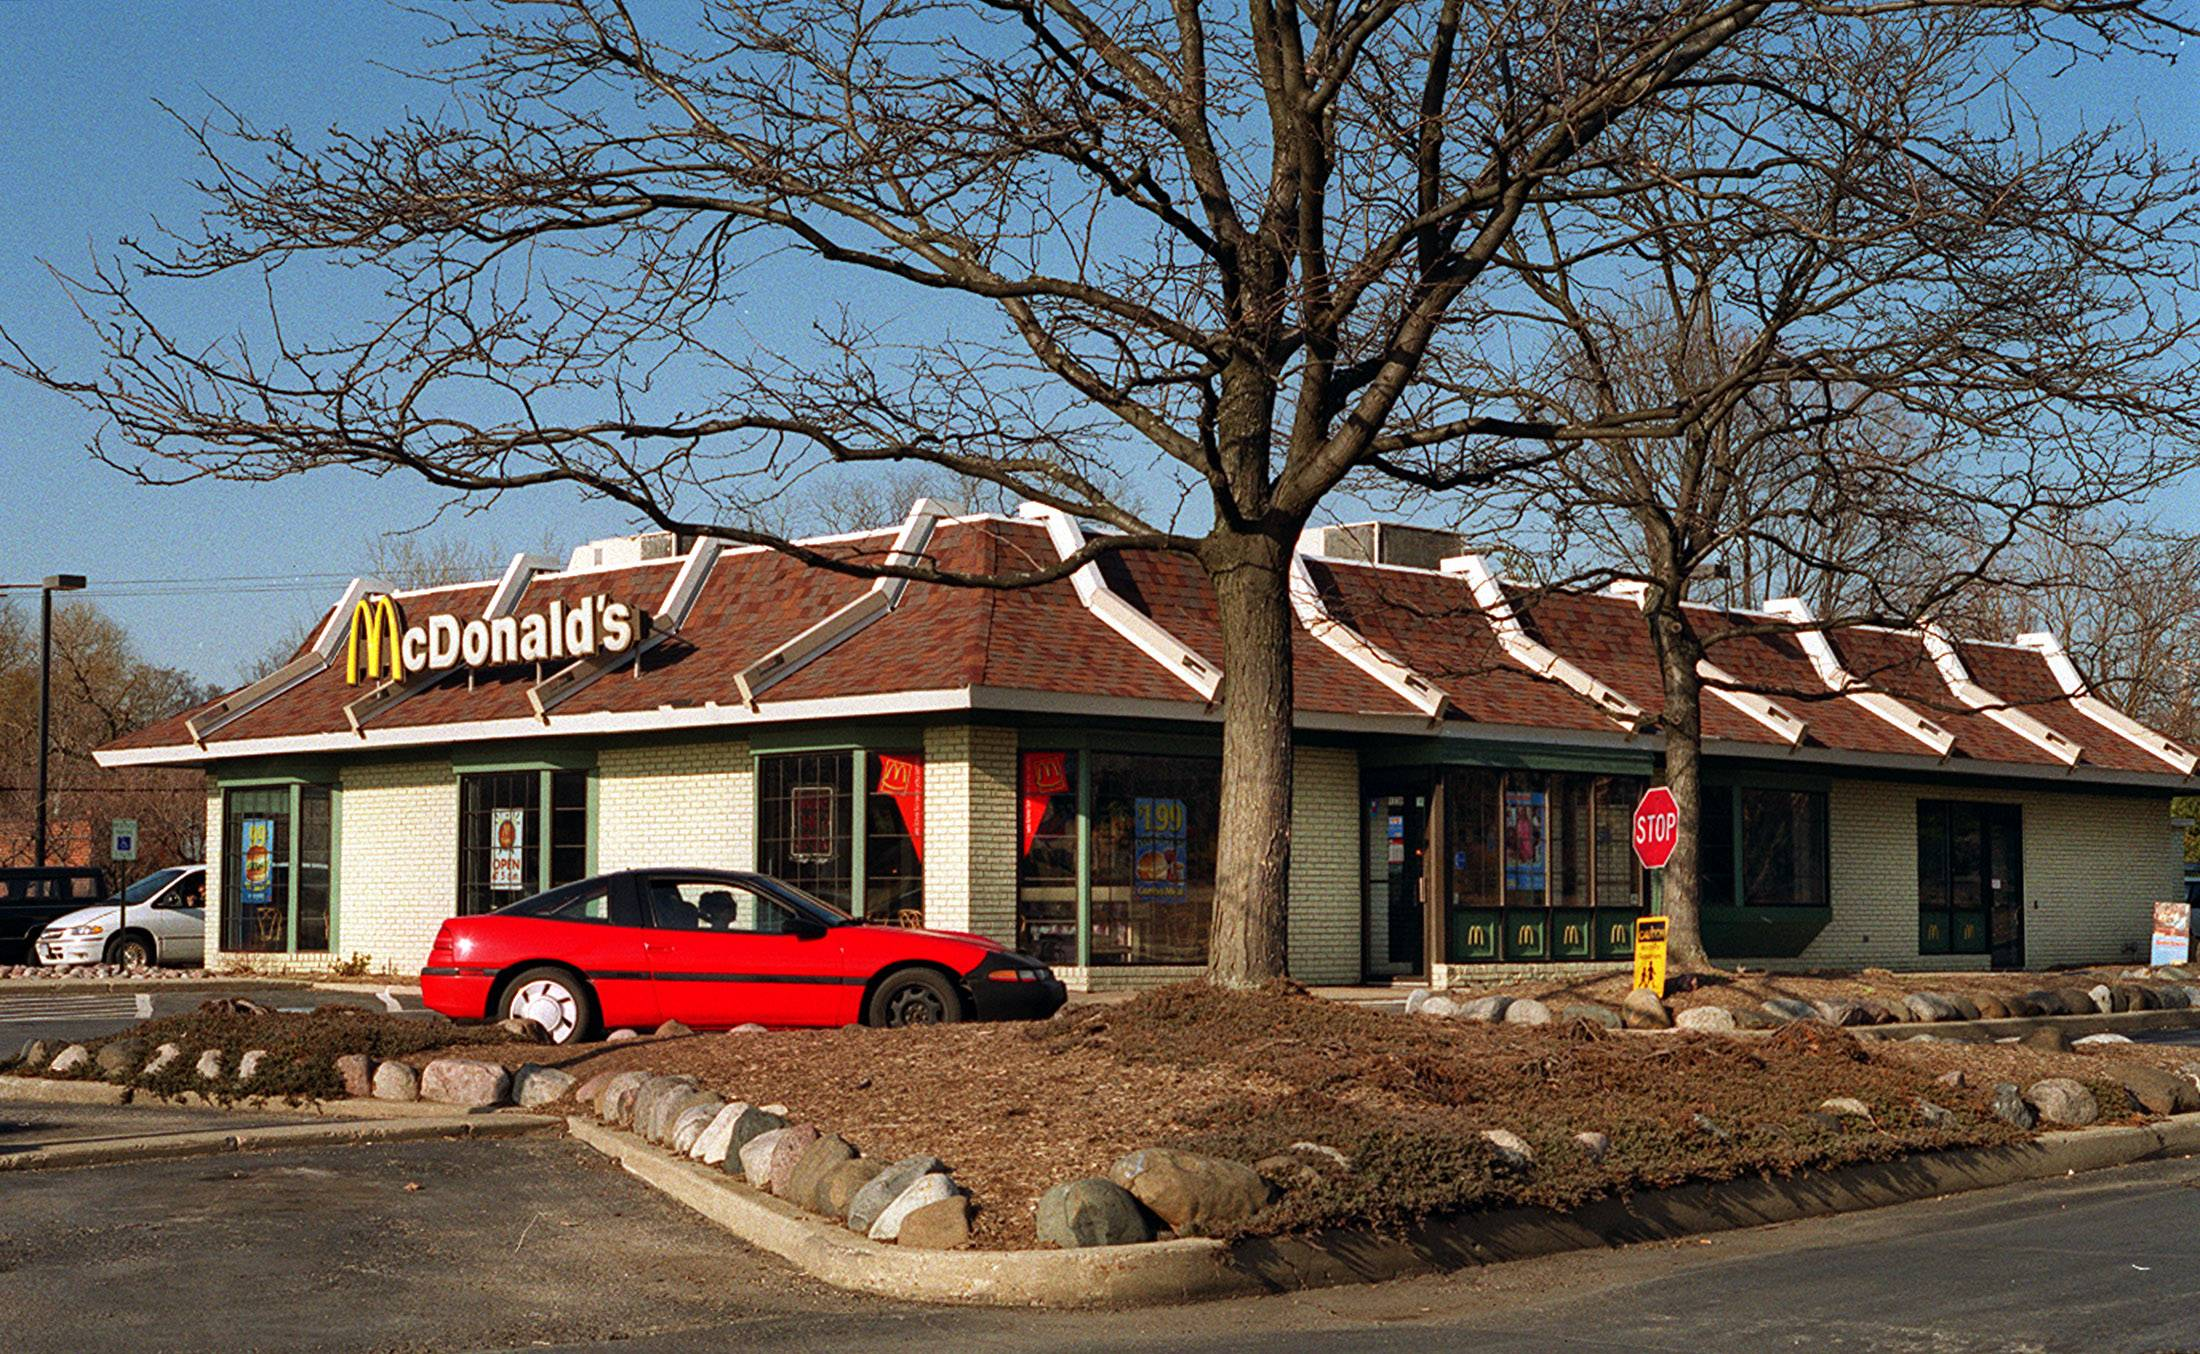 Oak Brook-based McDonald's says its global sales rose slightly in May as sales in China rebounded after last year's worries about avian flu.